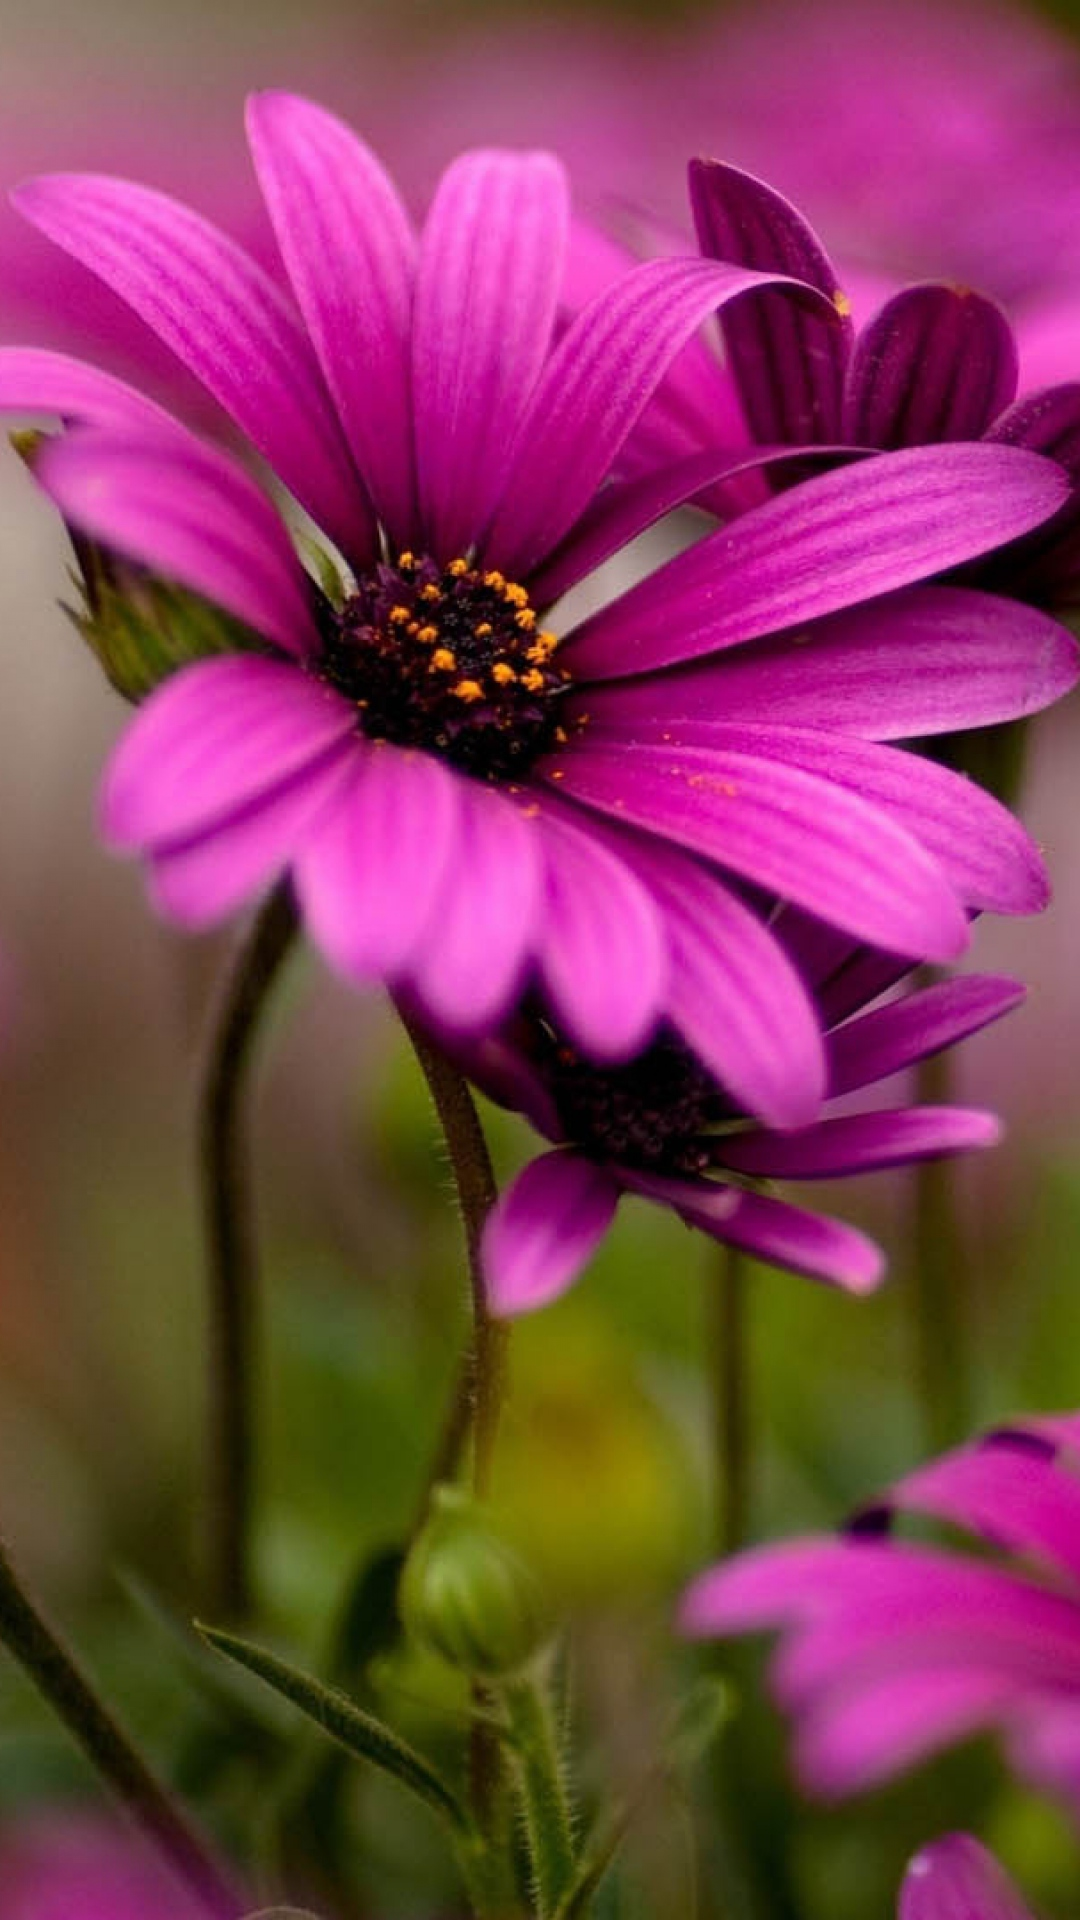 flowers-plants-petals-wallpaper-wp3405655